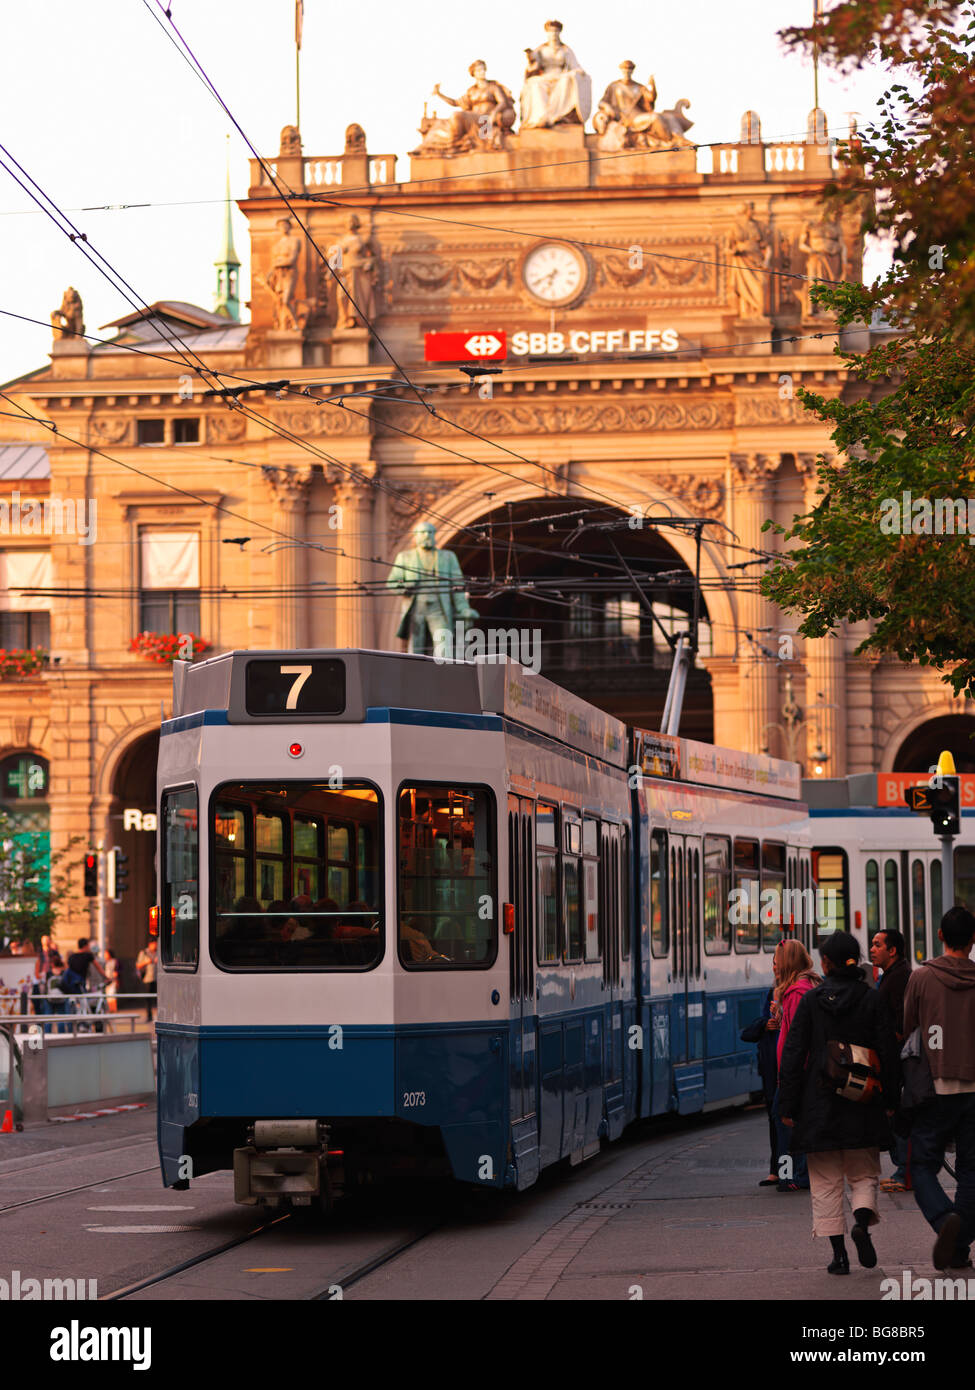 Switzerland, Zurich,tram in front of Hauptbahnhof, Zurich's main railway station - Stock Image